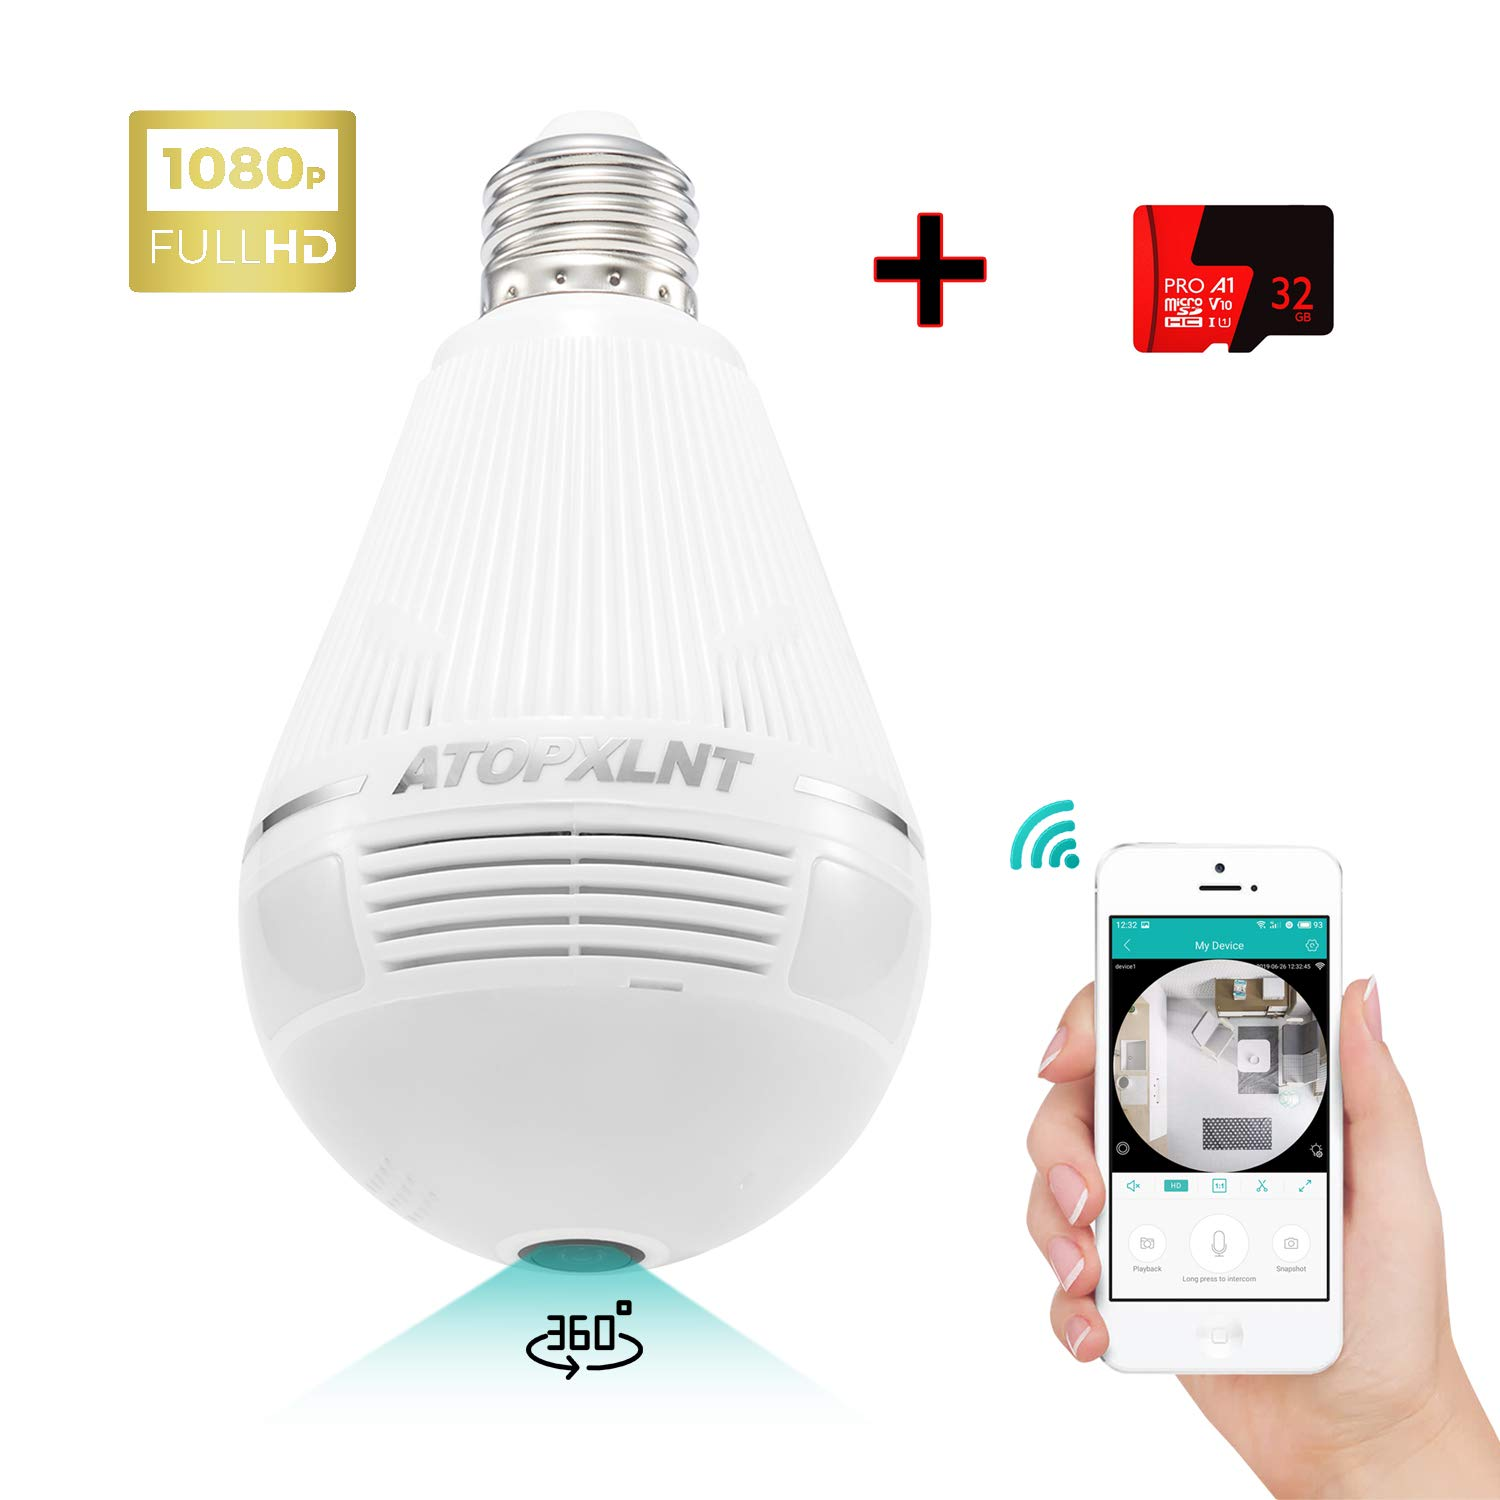 ATOPXLNT Light Bulb Camera WiFi Outdoor Indoor Panoramic IP Security Surveillance System 360 Degree Smart 3D VR 1080P HD Home Camera 2MP Wireless LED Night Vision Cam Motion Detection with 32G SD Card by ATOPXLNT